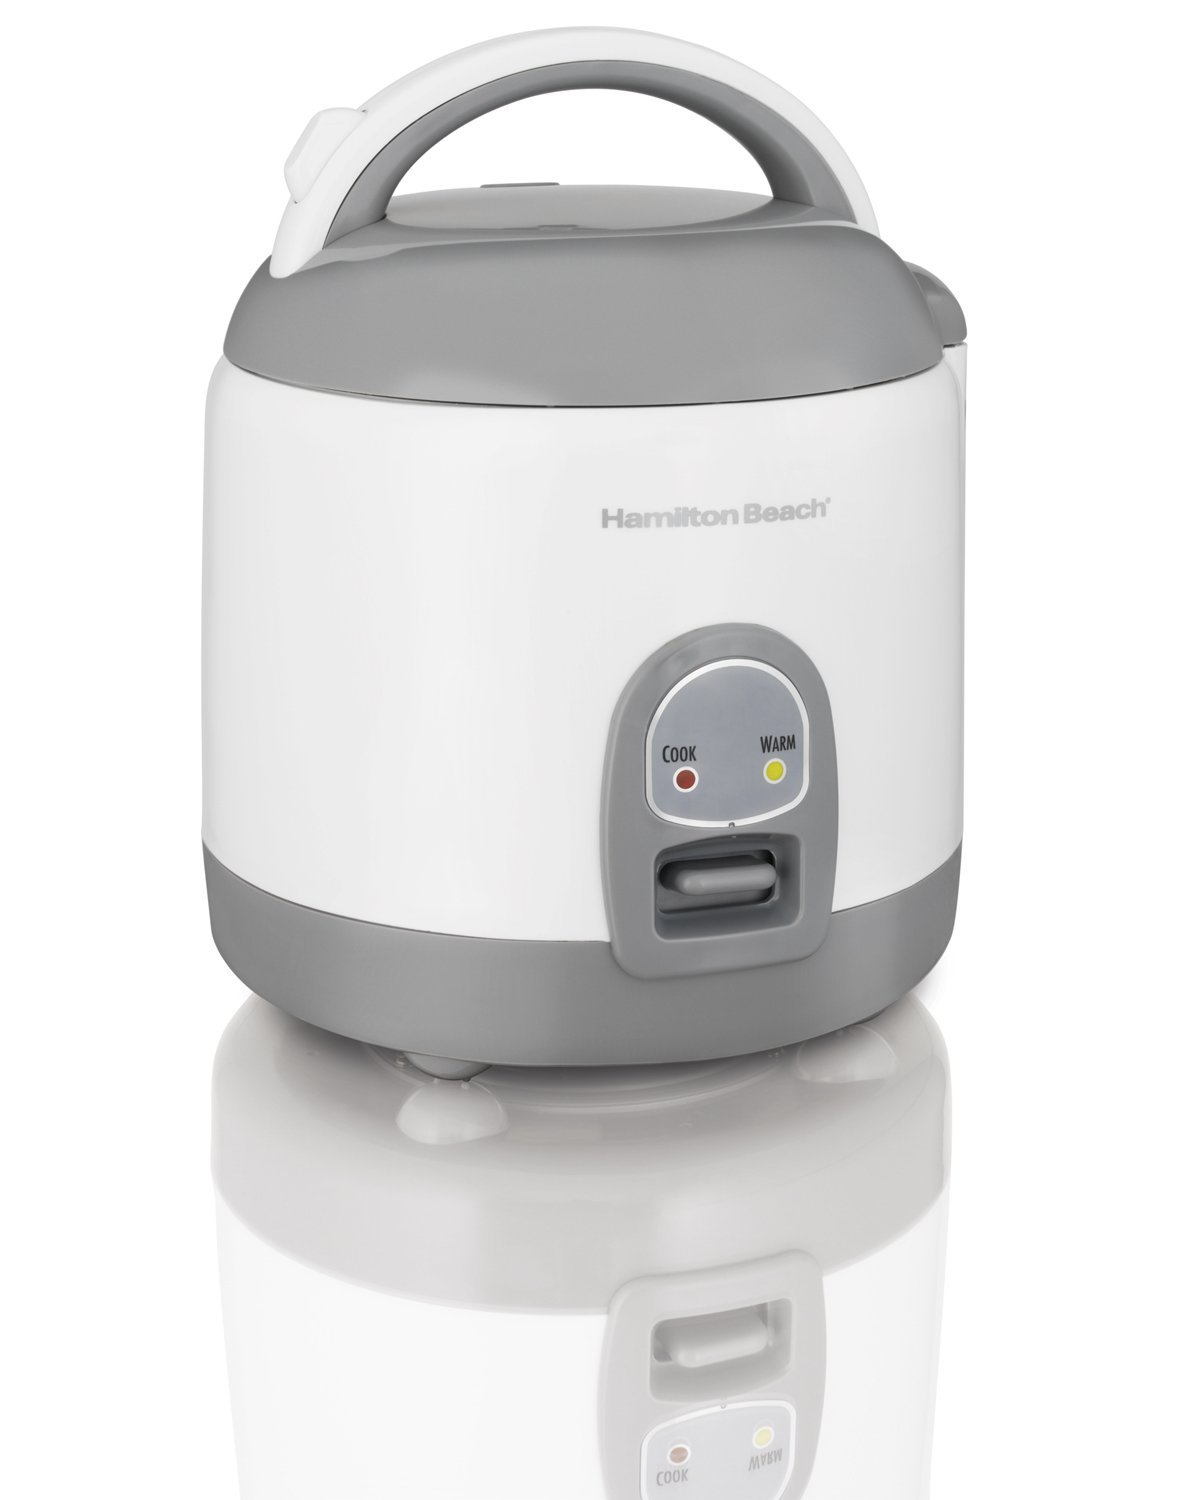 Hamilton beach (37508) rice cooker with rinser/steam basket